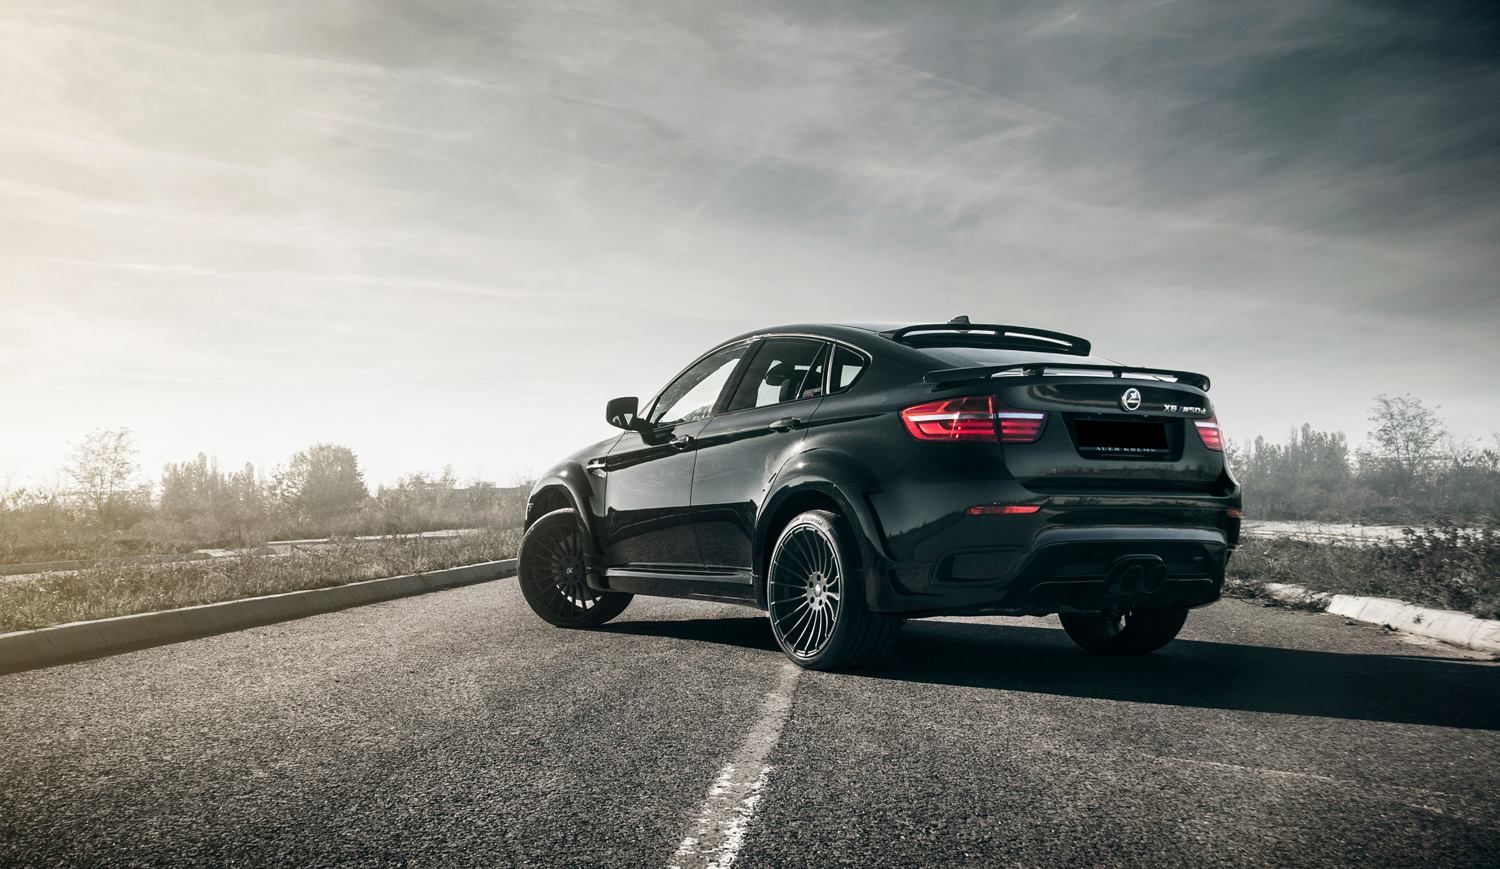 hamann launches the tycoon evo kit for bmw x6 m50d. Black Bedroom Furniture Sets. Home Design Ideas